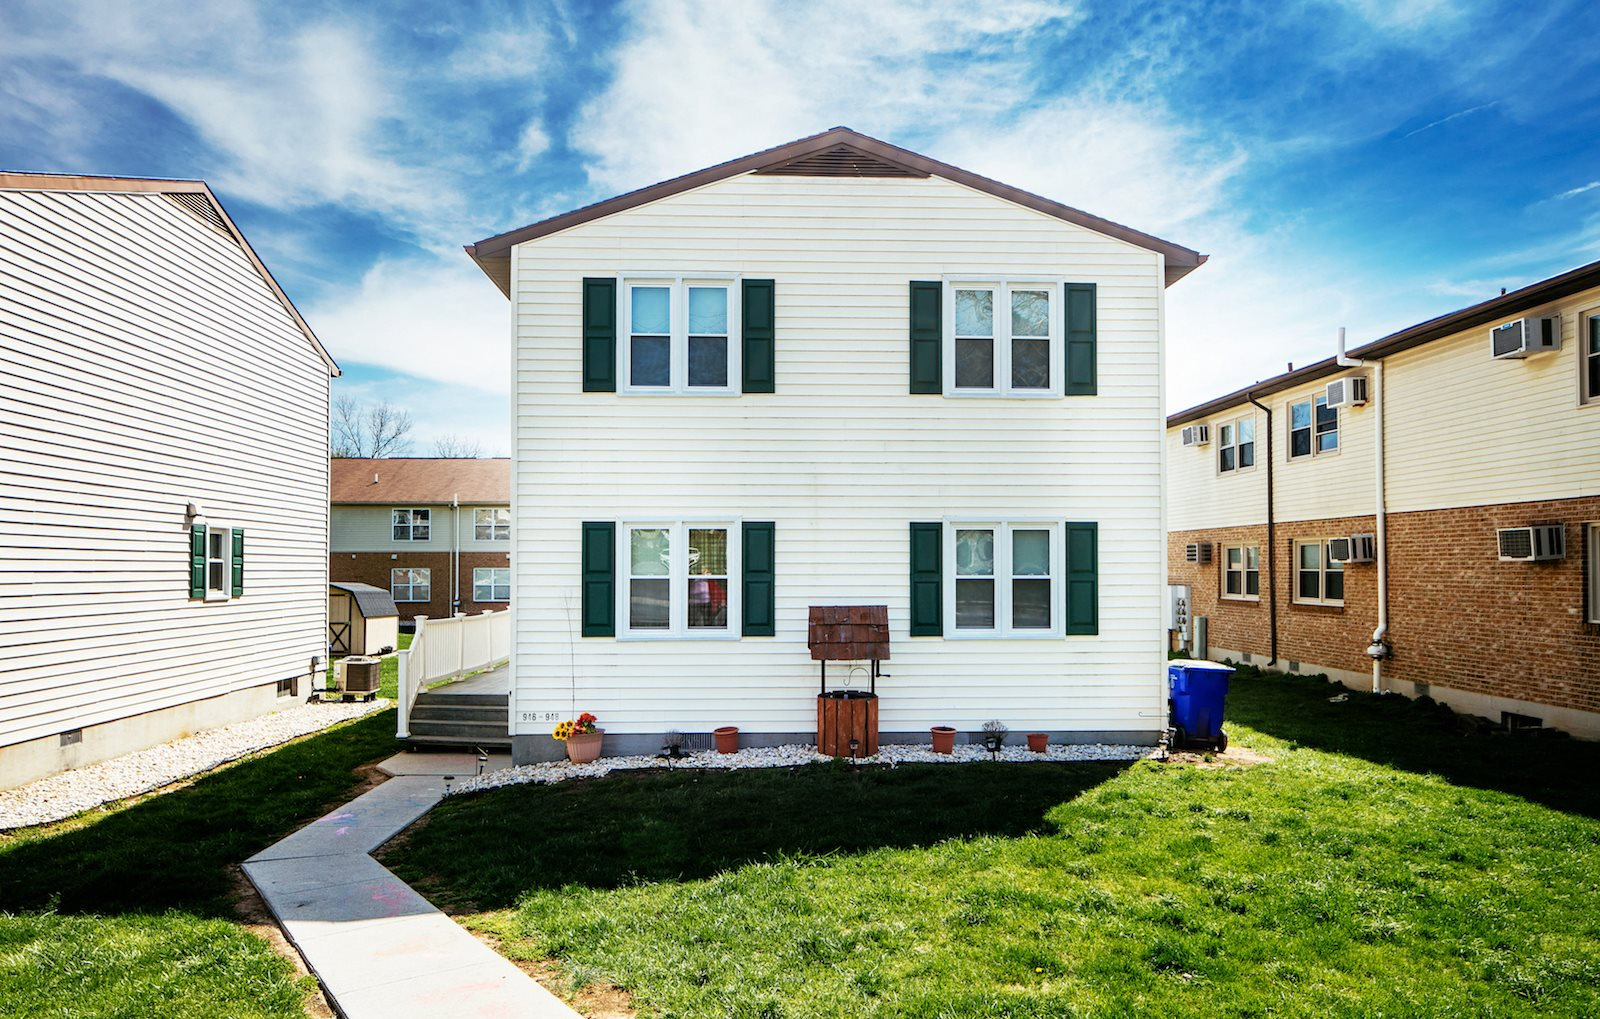 Apartments in hagerstown md st clair terrace - 2 bedroom apartments in hagerstown md ...